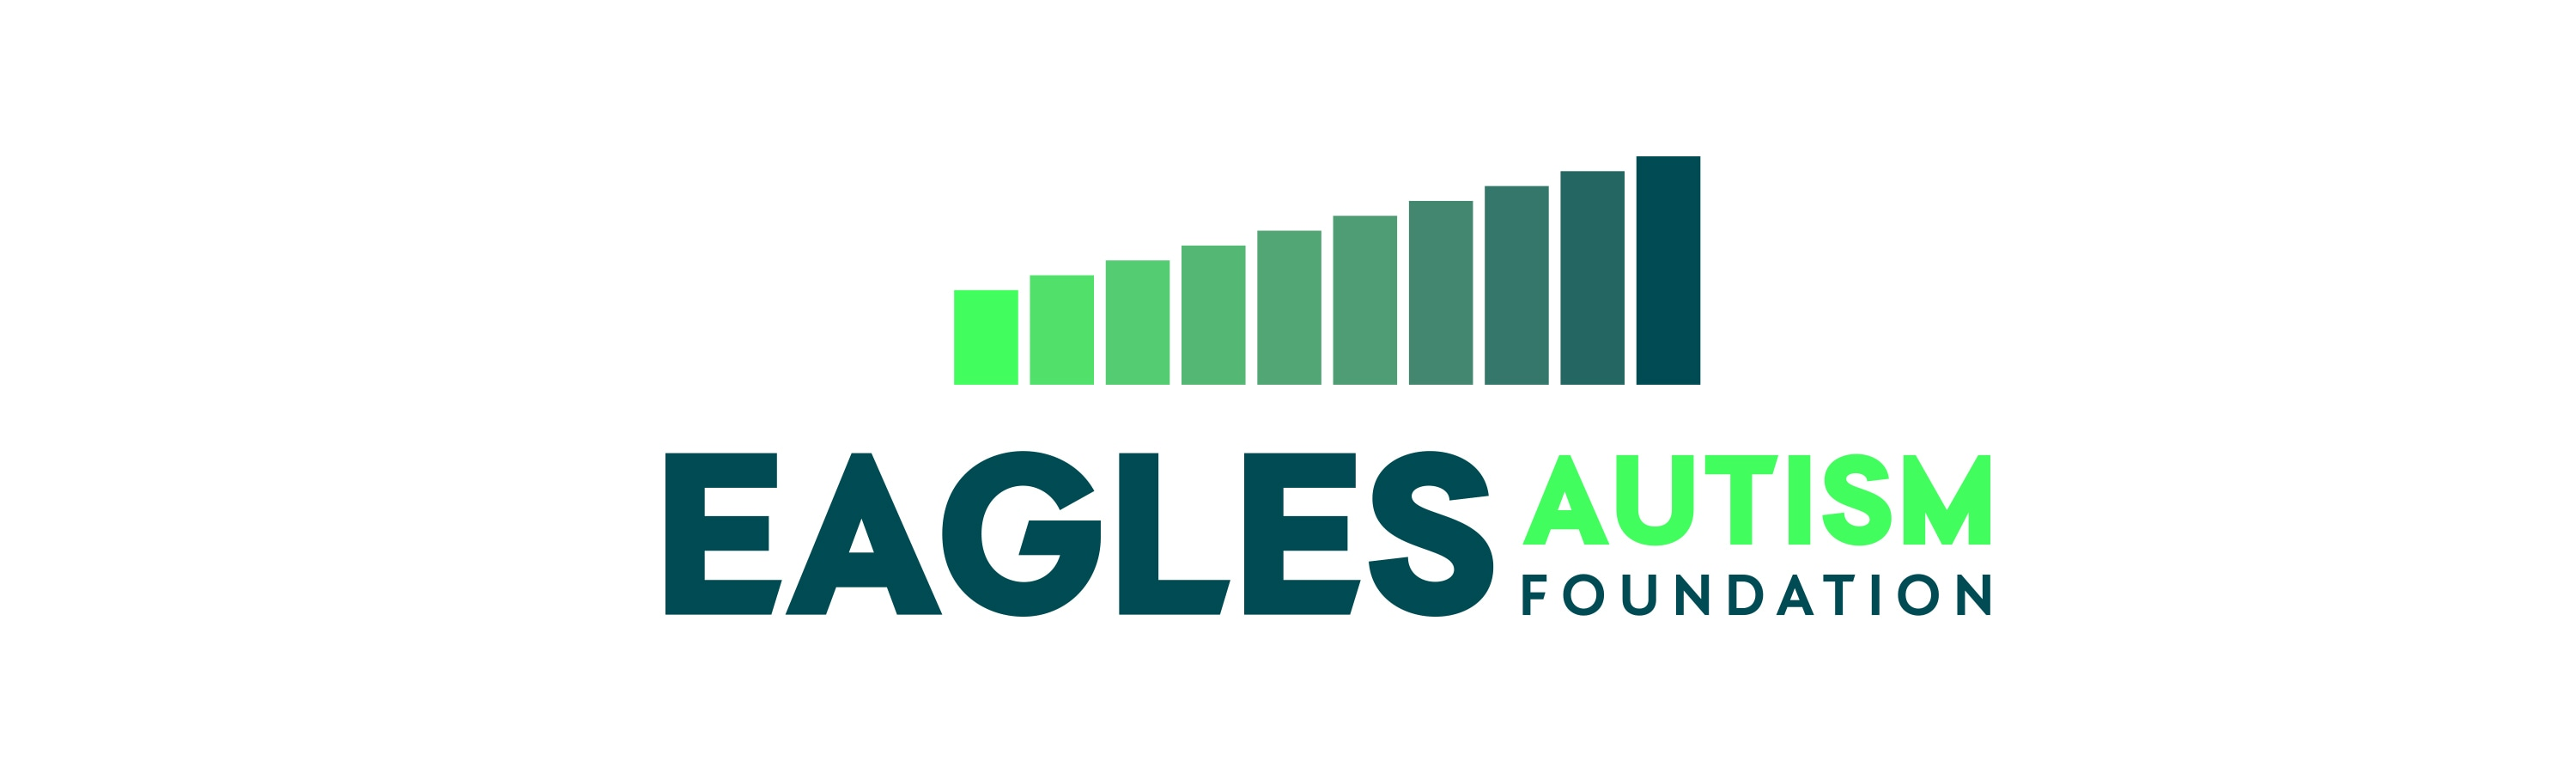 Eagles Autism Foundation